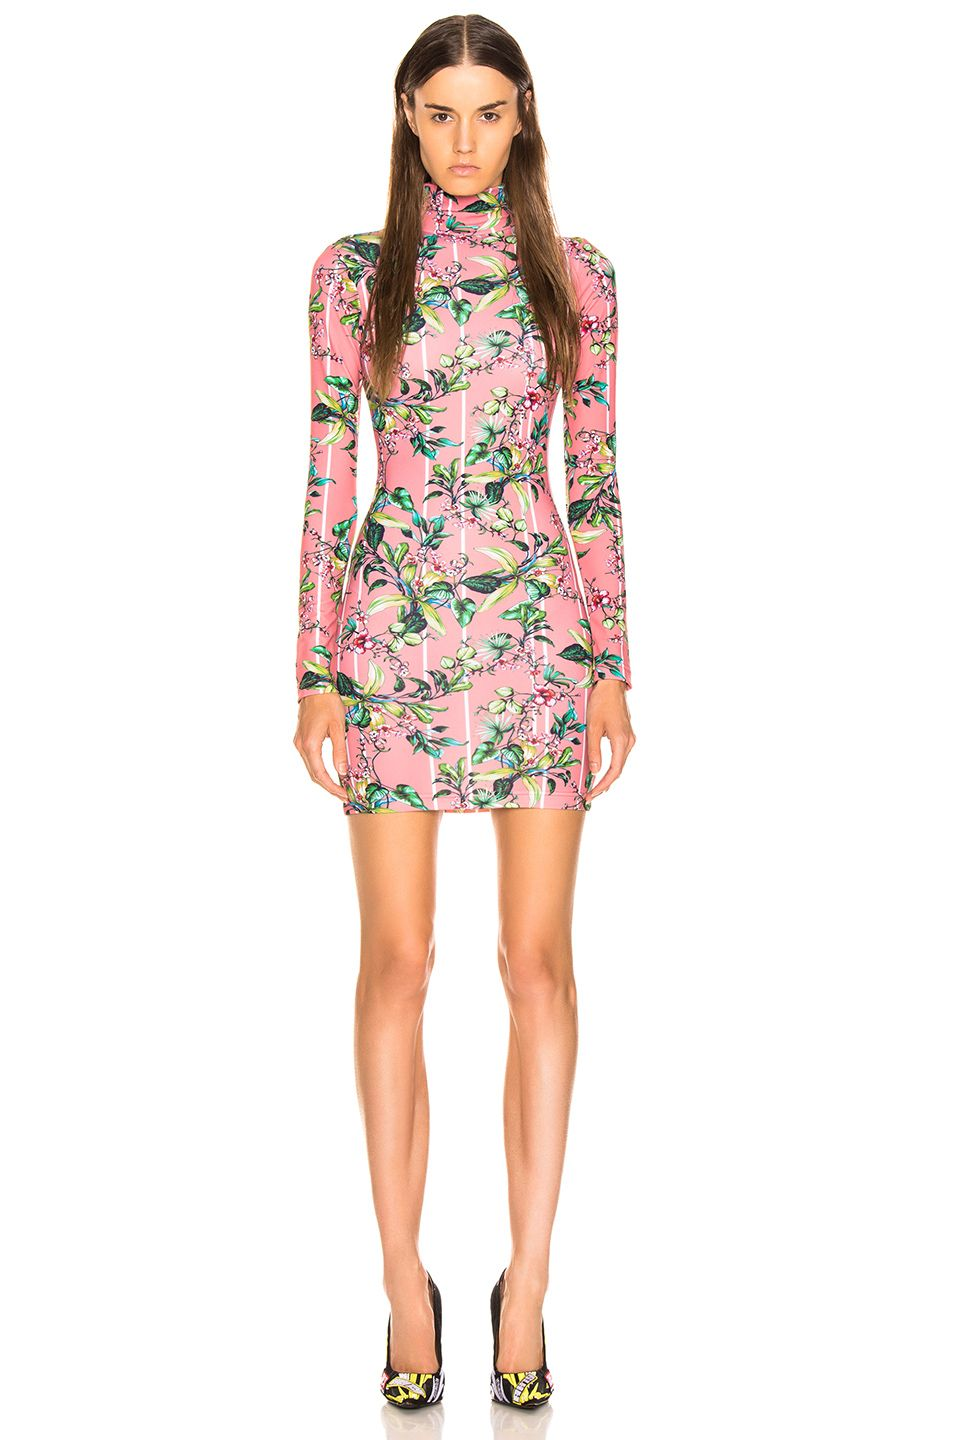 shop-vetements-pink-flowers-long-sleeved-body-dress